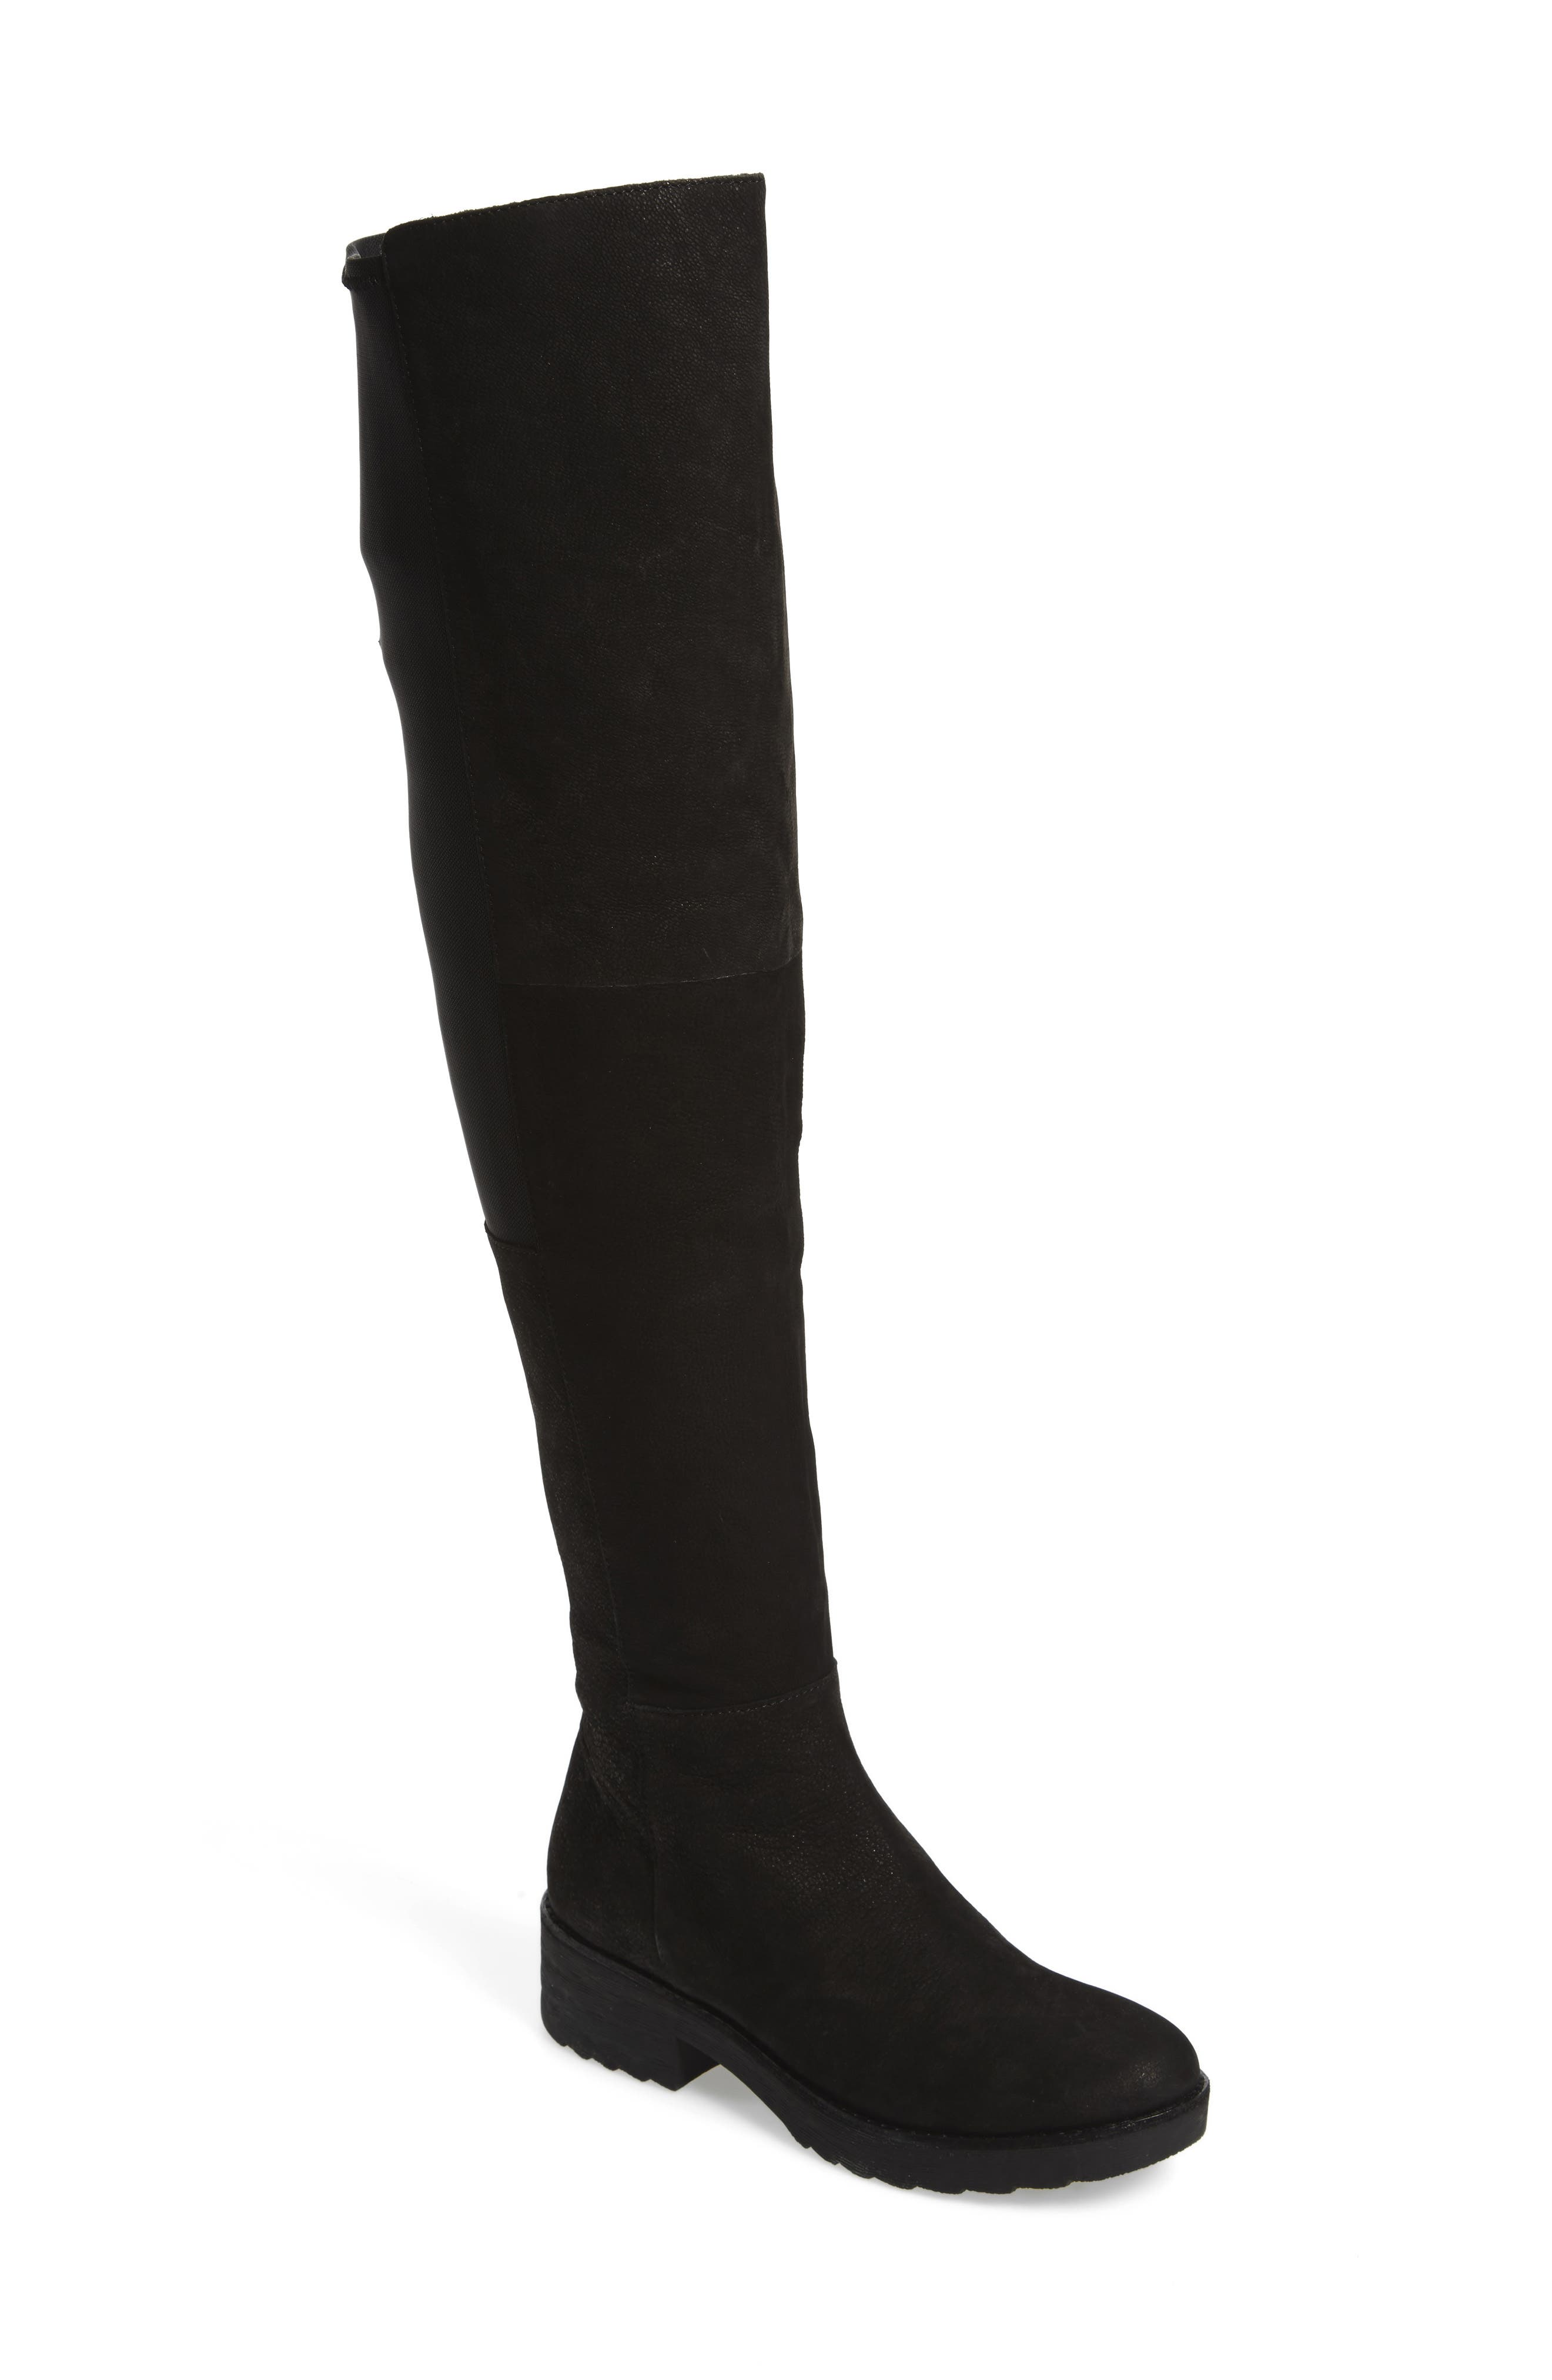 Loft Over the Knee Boot,                         Main,                         color, 001